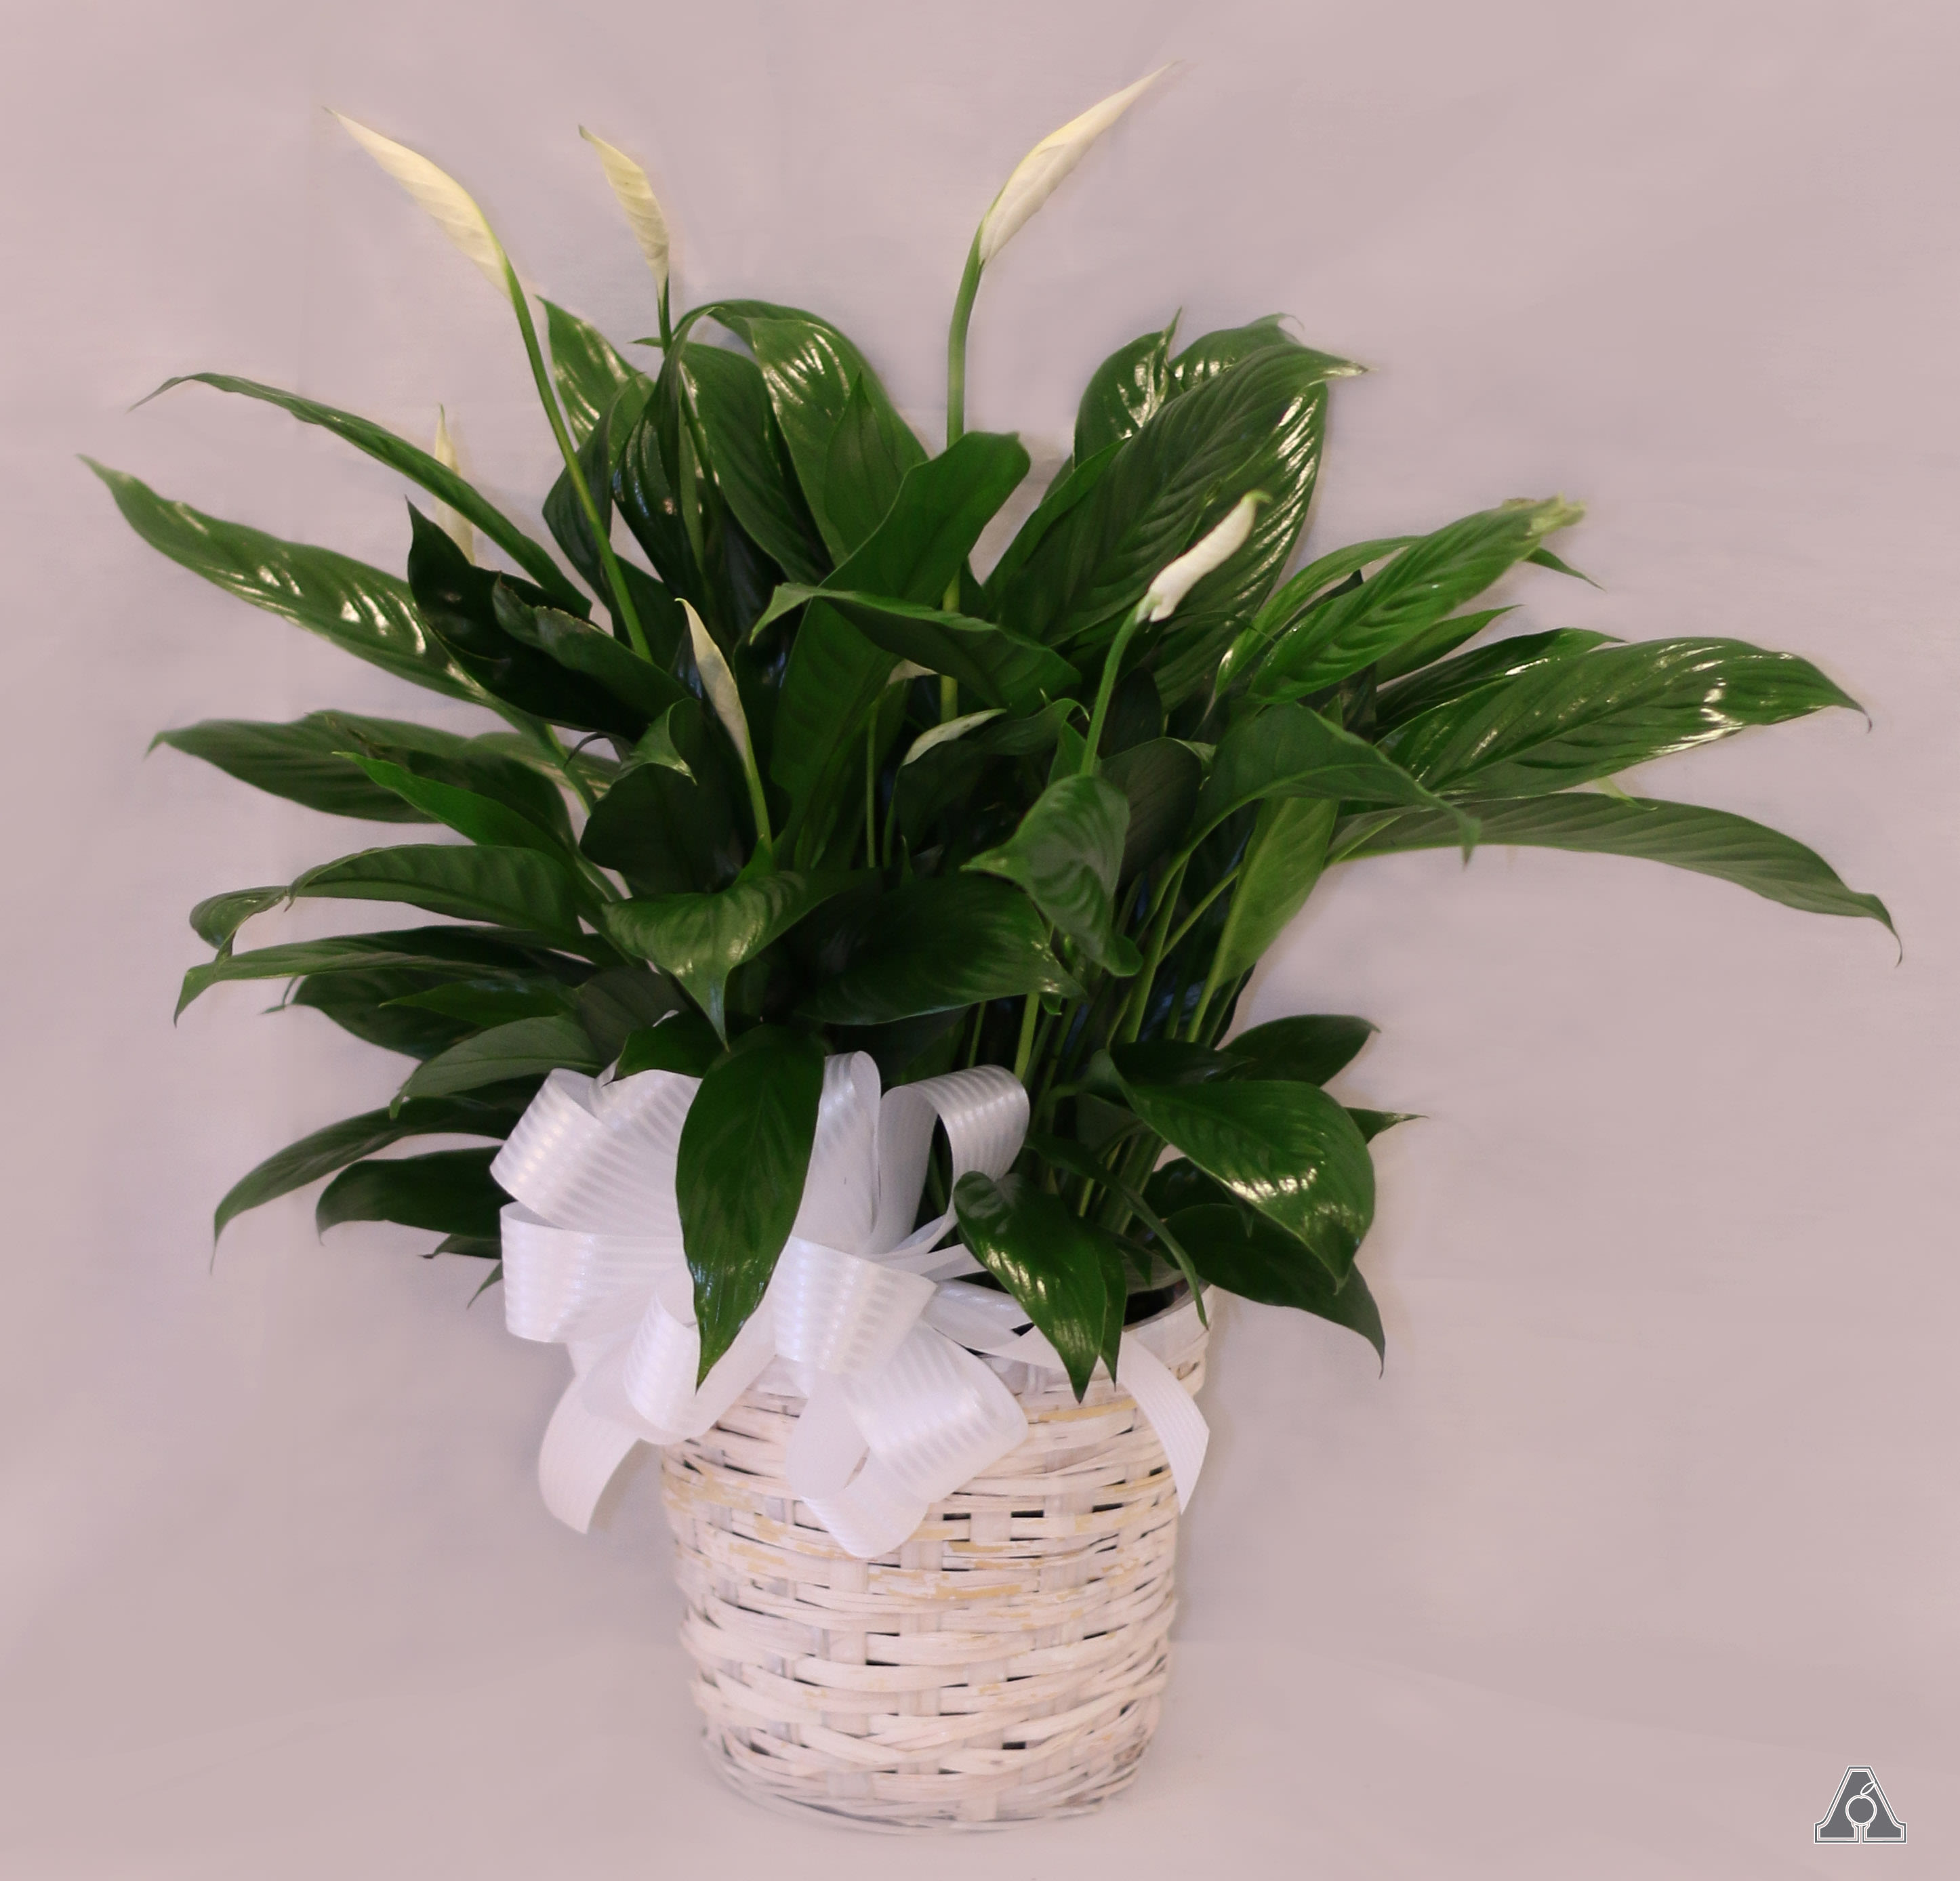 Peace Lily Plant in Amherst, MA | Atkins Farms Flower Shop on peace lily family plant, chinese evergreen house plant, droopy peace lily plant, funeral peace lily plant, peace lily potted plant, peace lily plant benefits, classic peace lily plant, black bamboo potted plant, white and green leaves house plant, croton house plant, peace plant brown leaves, dragon plant, holly house plant, zamiifolia house plant, problems with peace lily plant, weeping fig house plant, marginata house plant, artificial bamboo house plant, black gold lily plant, pineapple plant house plant,